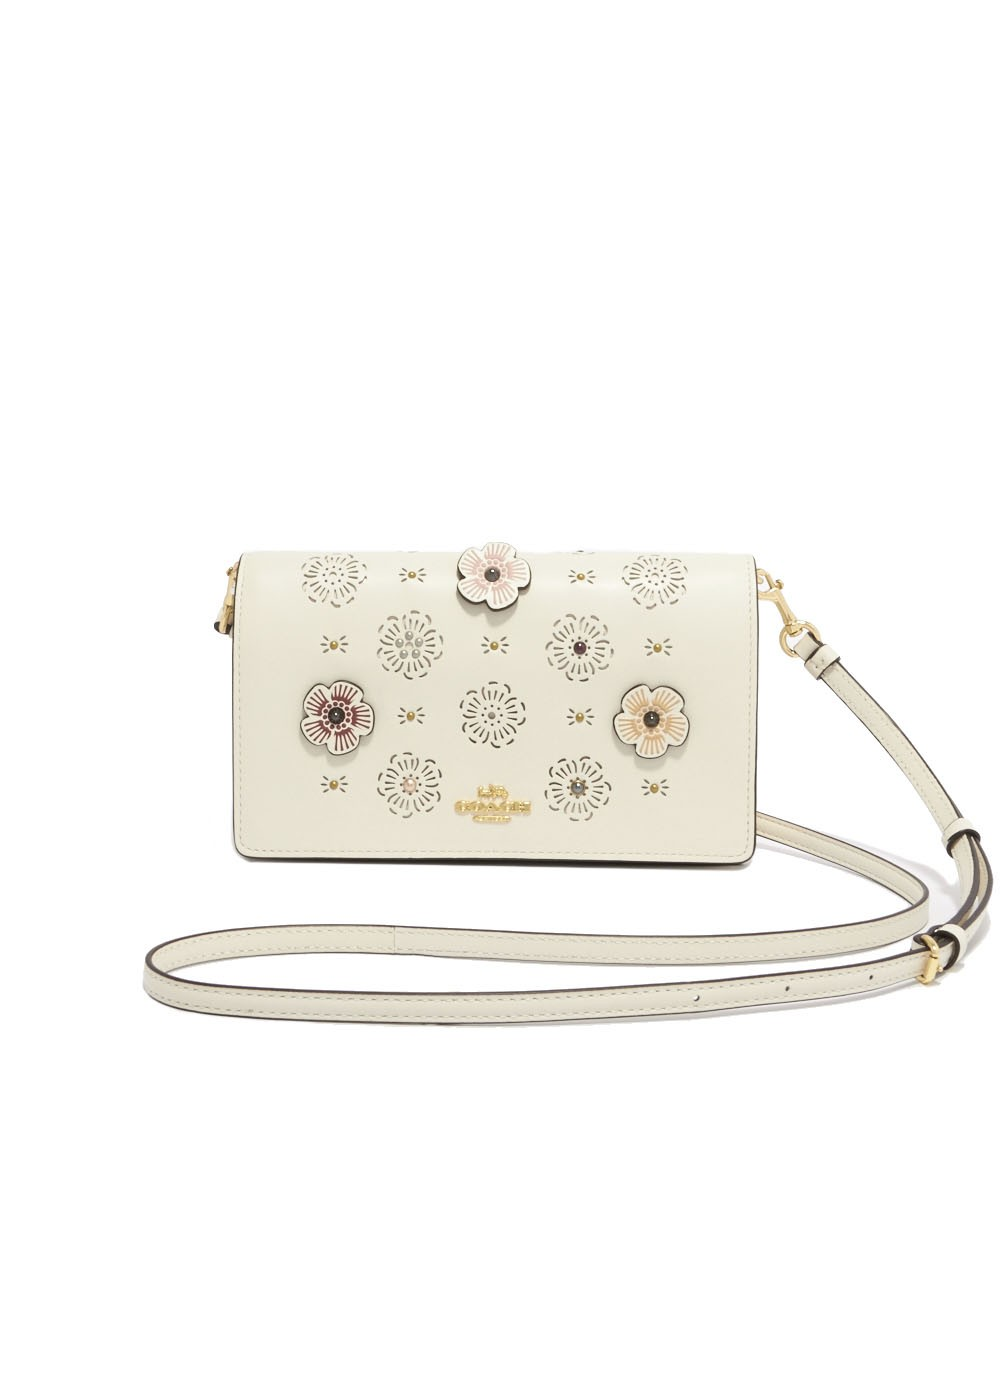 【最大55%OFF】FOLDOVER CROSSBODY|LI/CHALK|ショルダーバッグ|COACH